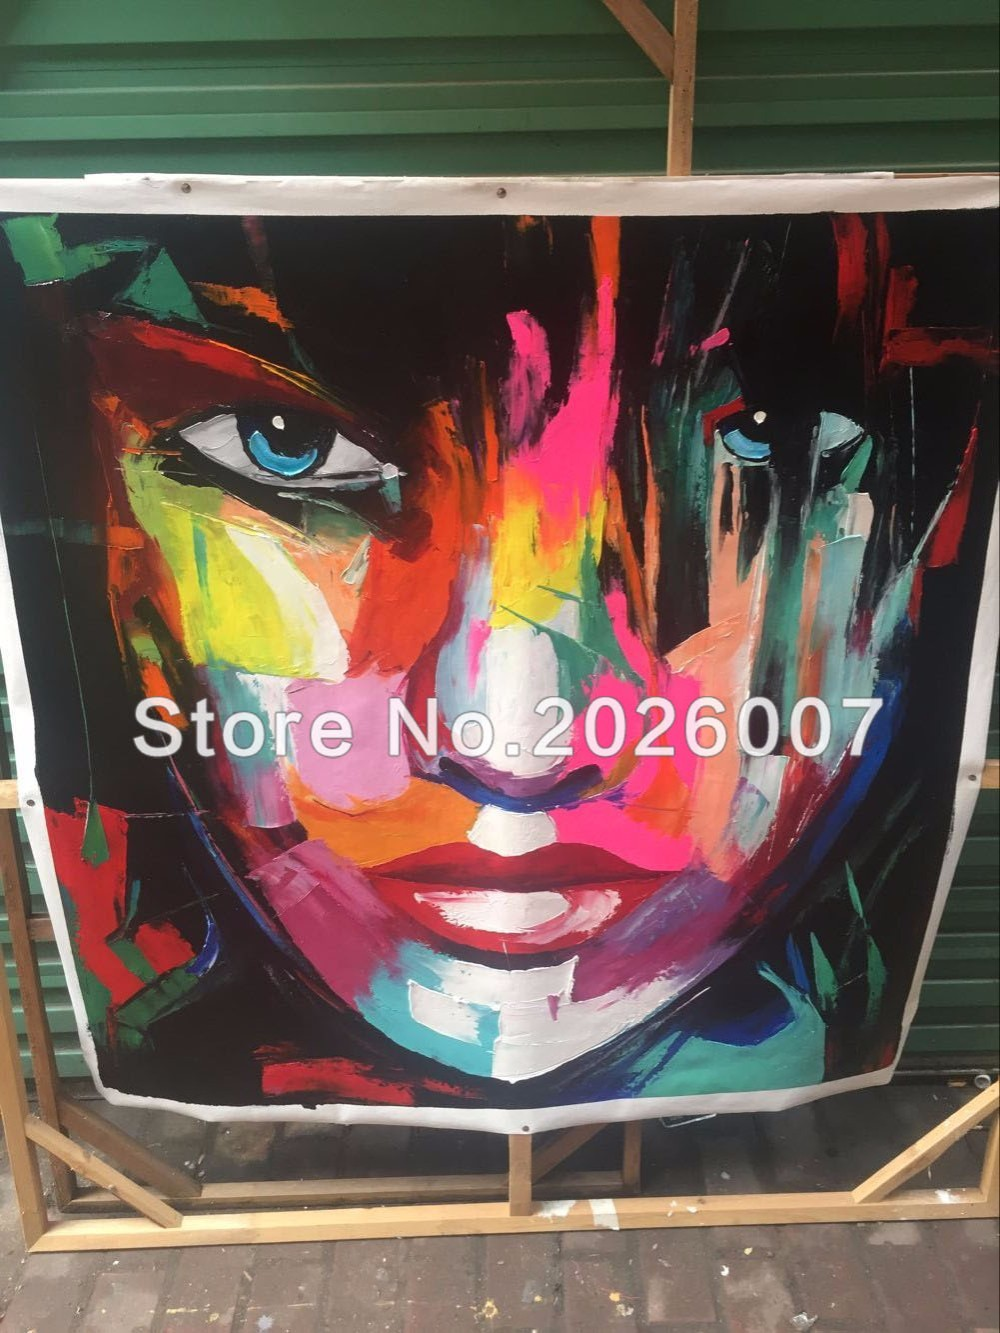 Buy High quality Handpainted Francoise Nielly cooling face palette knife painting portrait abstract oil painting impasto on canvas cheap